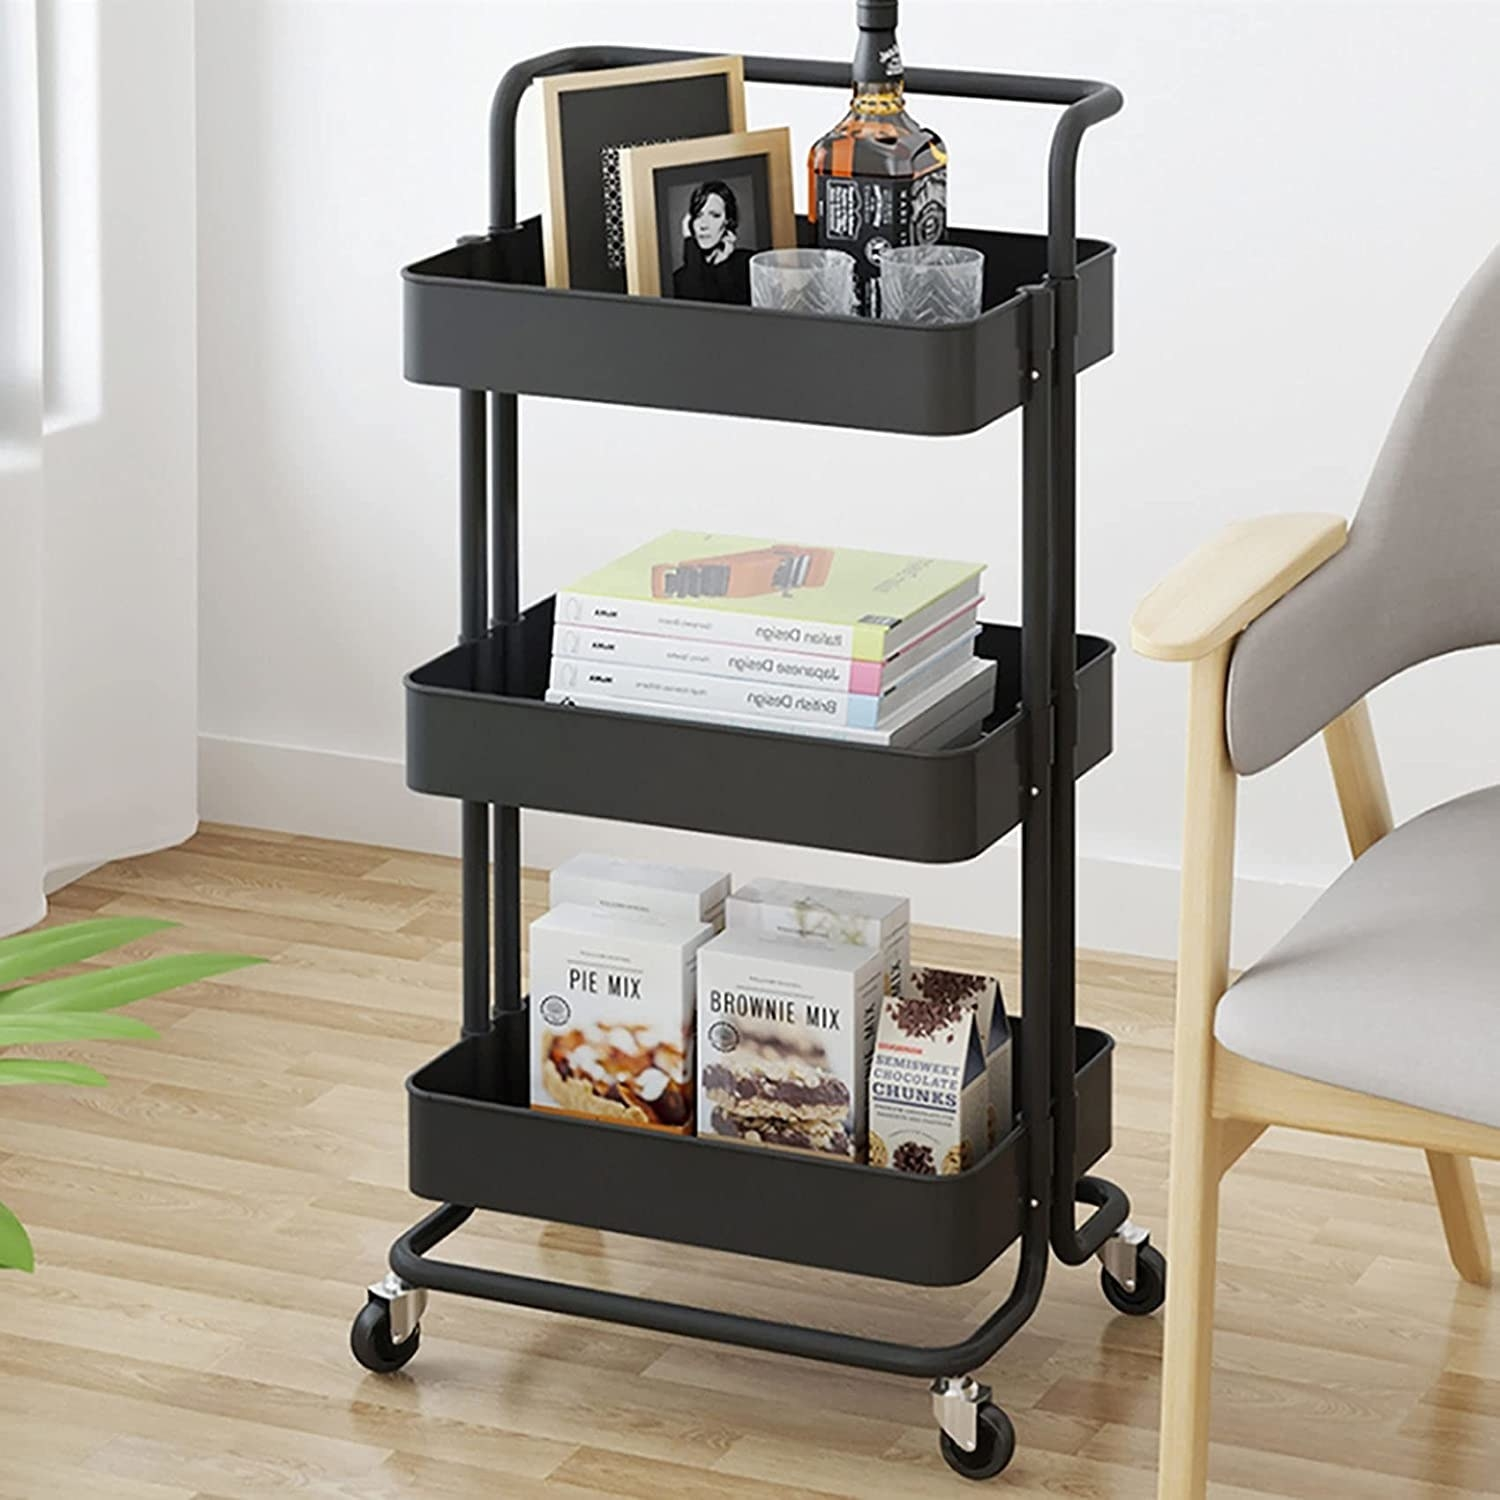 The rolling utility cart with books and various knick knacks on it